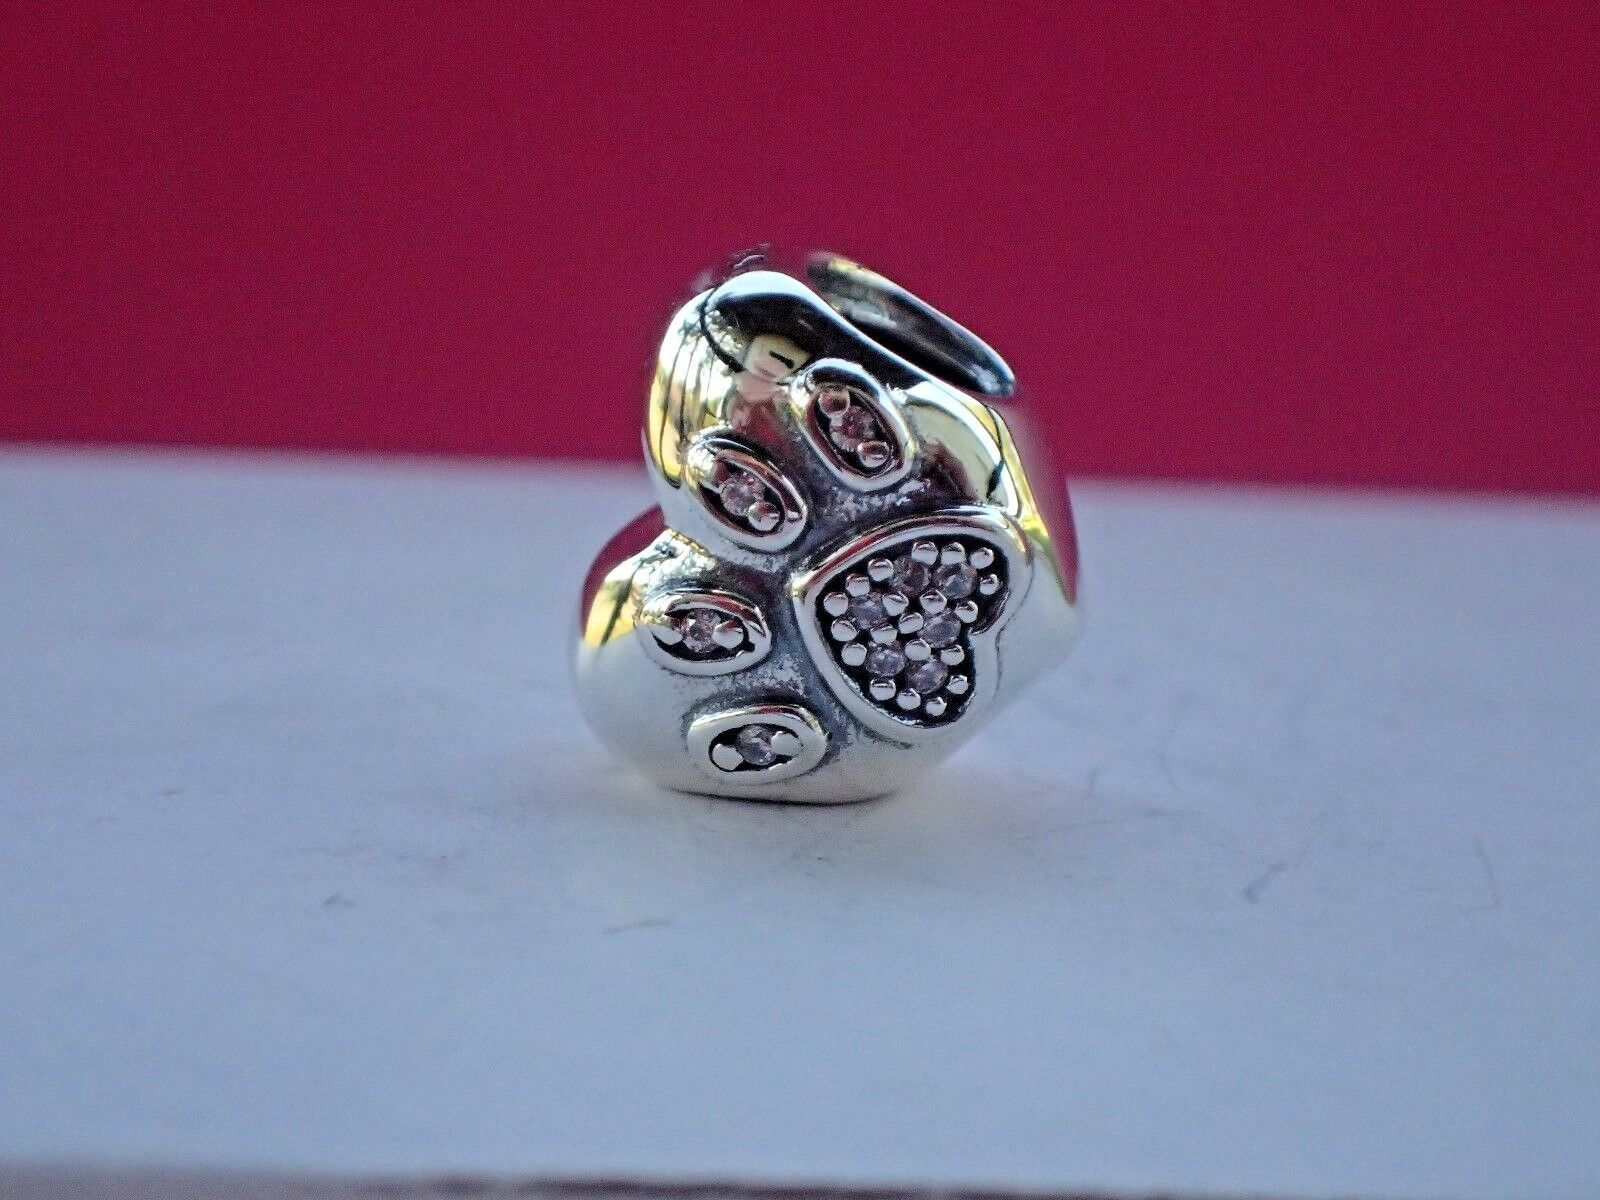 412a1b9d0 ... Paw EAN 5700302357851 product image for Authentic Pandora 791713cz I Love  My Pet Bead | upcitemdb.